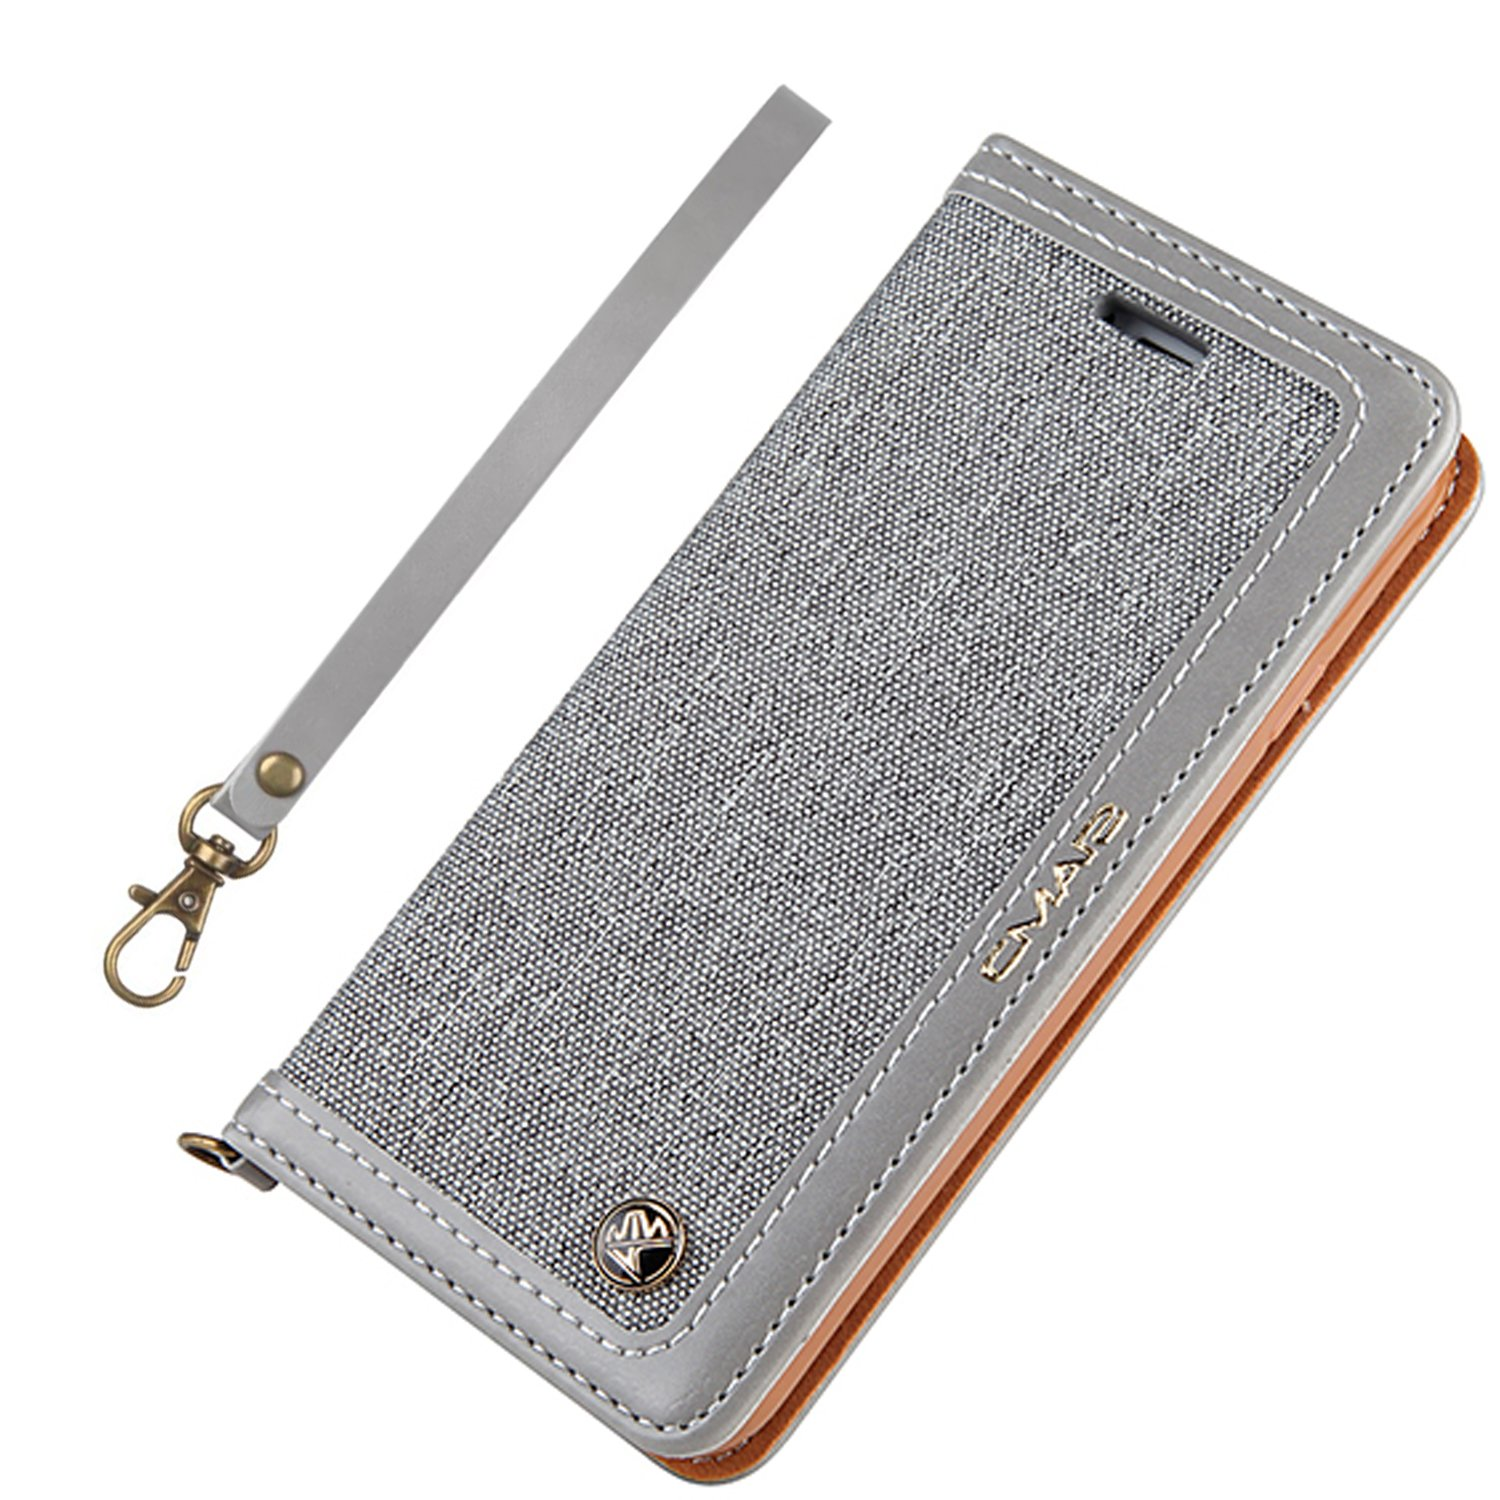 iPhone 6S Case iphone 6 Case Canvas Wallet Slim Fit Folio Book Cover Flip Wallet Case With [Business Card Holder] for iPhone 6s / 6 (6/6s 4.7inch, Grey1)